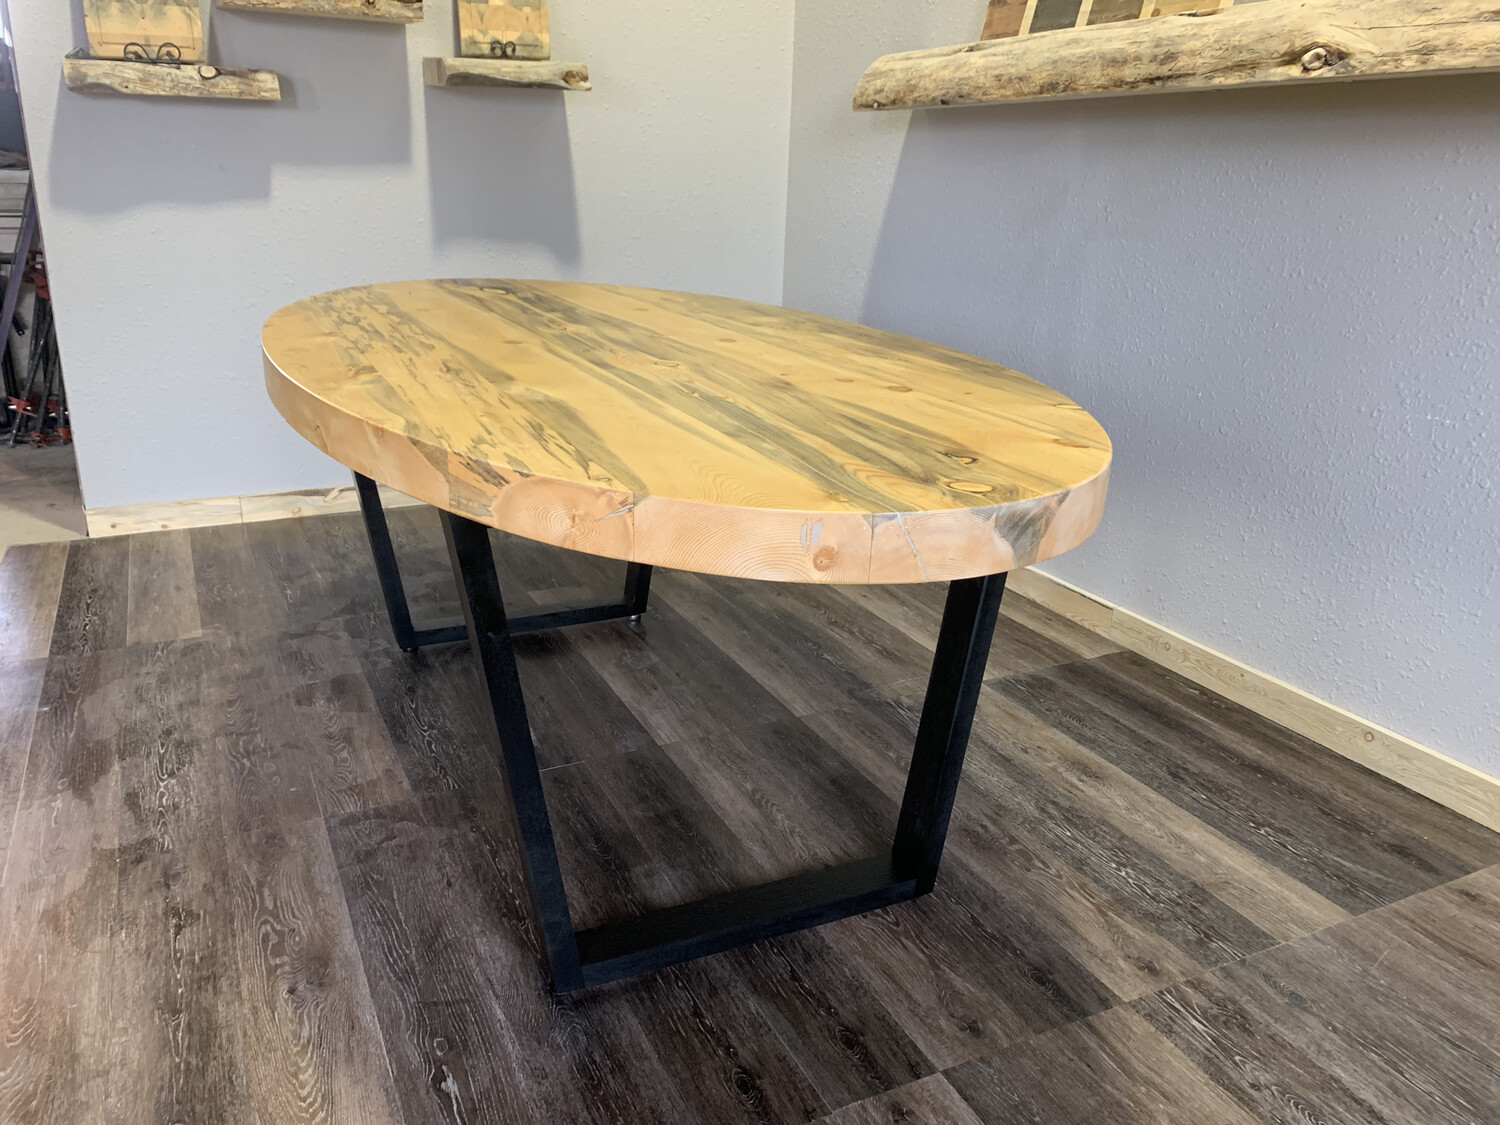 Oval Beetle Kill Dining Table